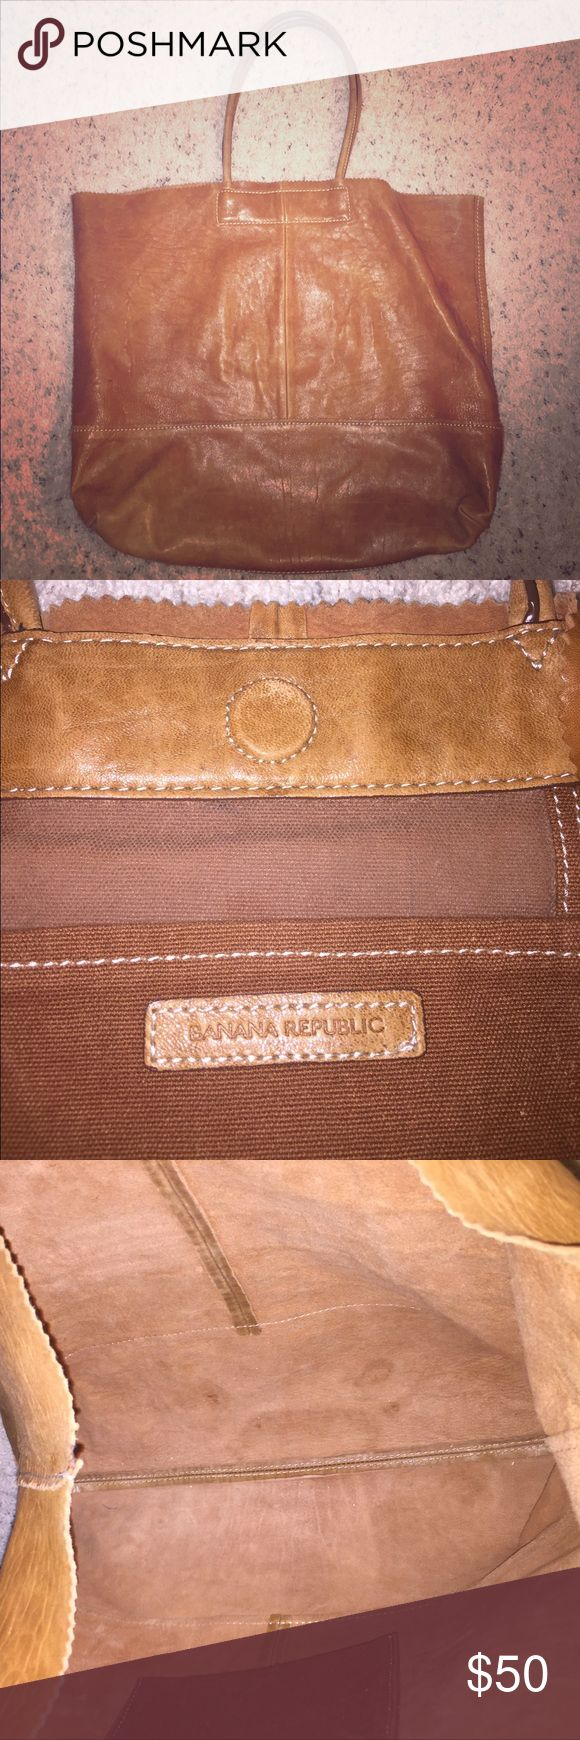 SALE!! Banana Republic tote Large camel brown leather tote with magnetic closure. Great condition. Little use, one small pen mark (pictured) Banana Republic Bags Totes